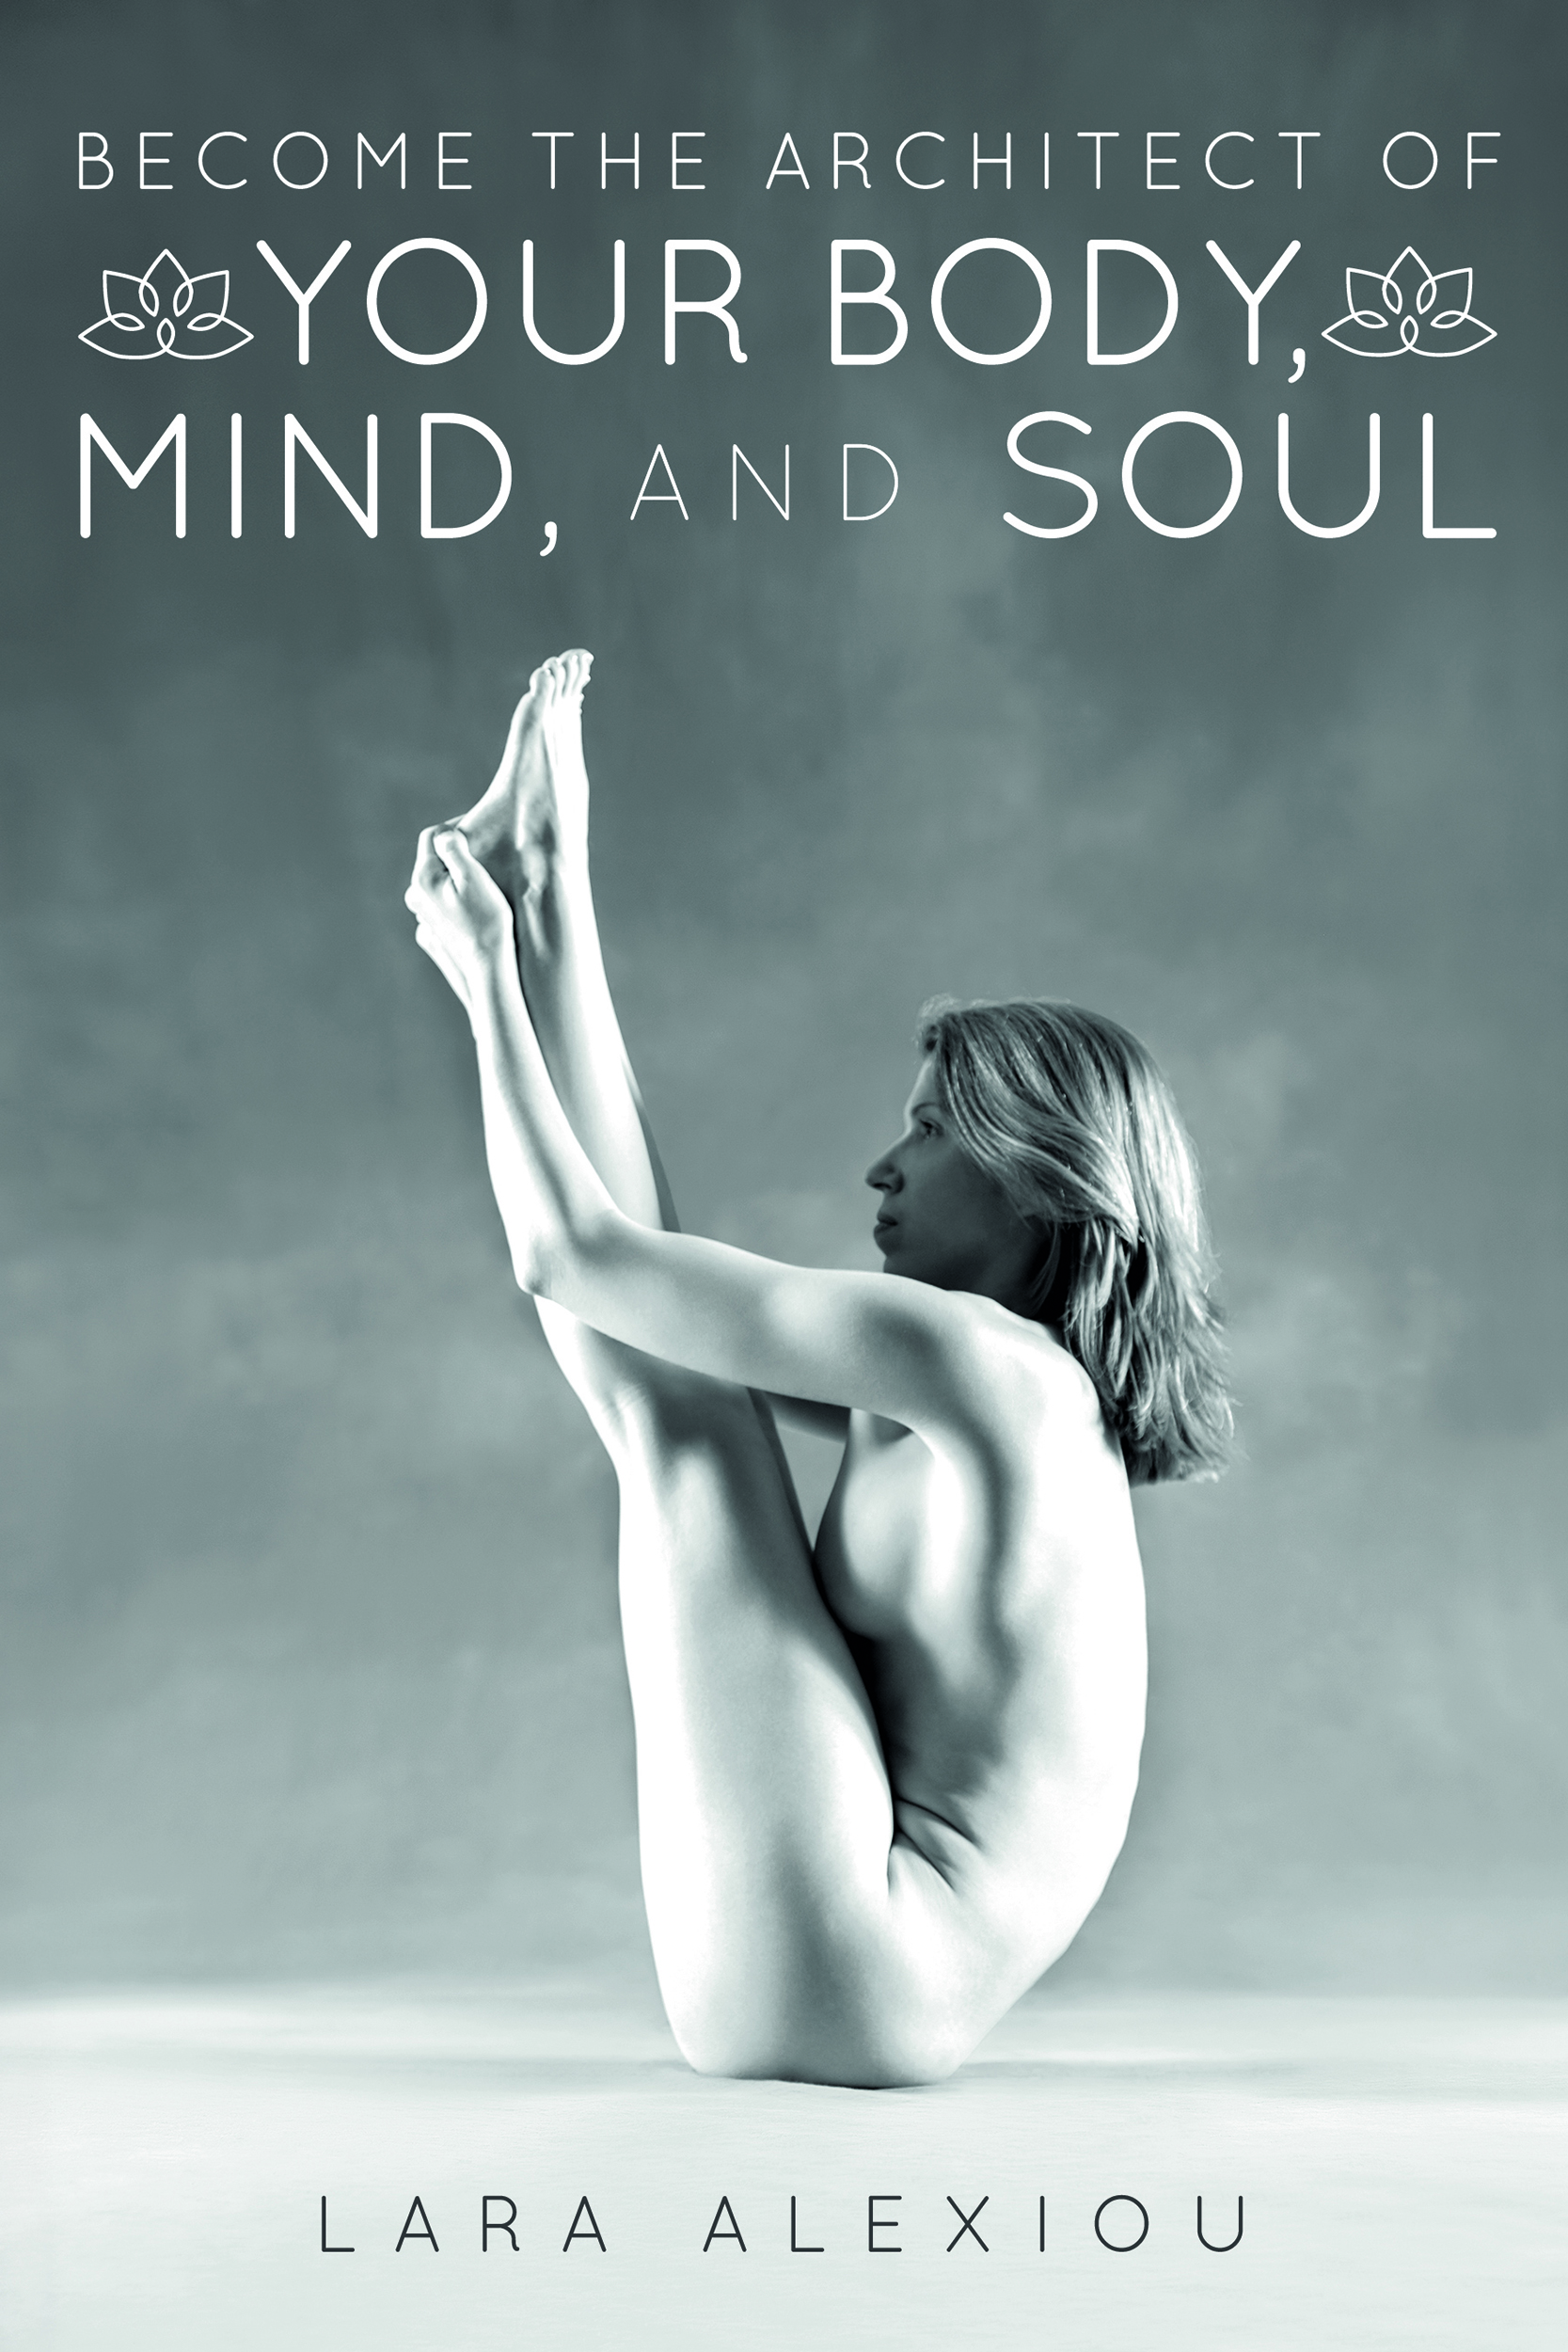 Become the Architect of Your Body, Mind, and Soul